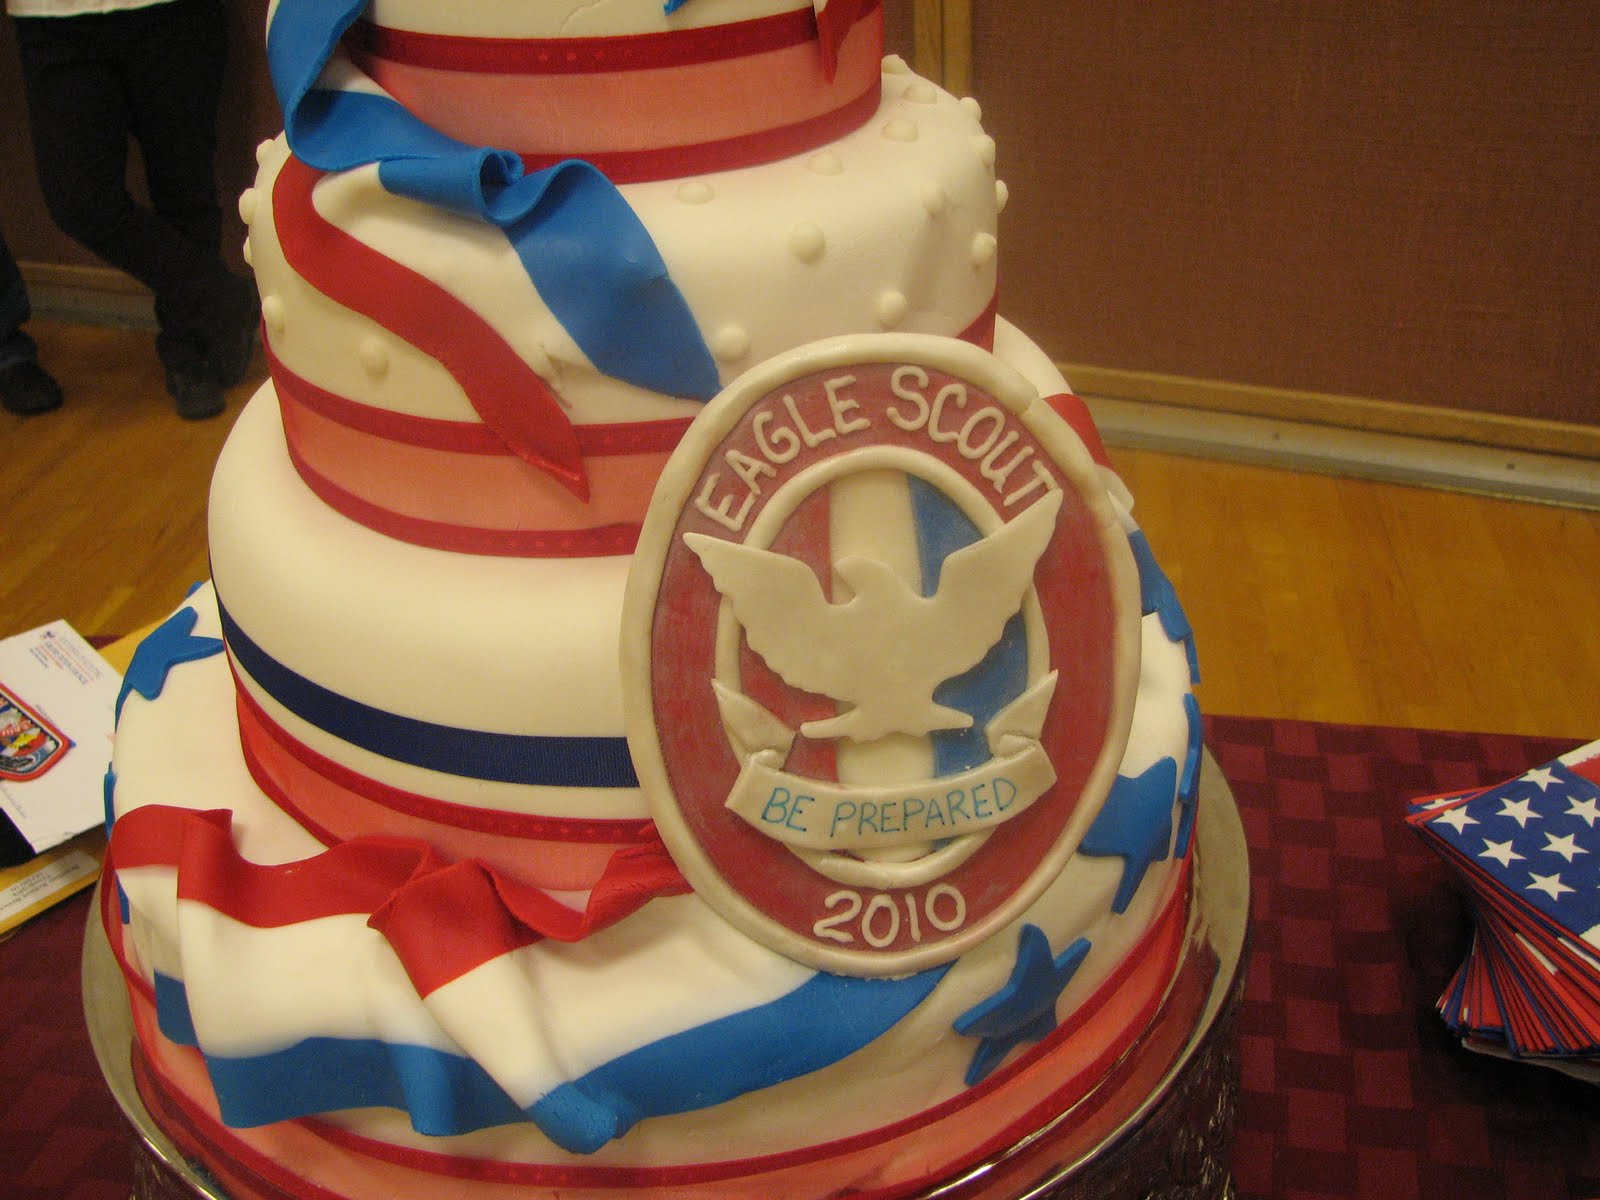 Decadent Designs: Eagle Scout Court of Honor